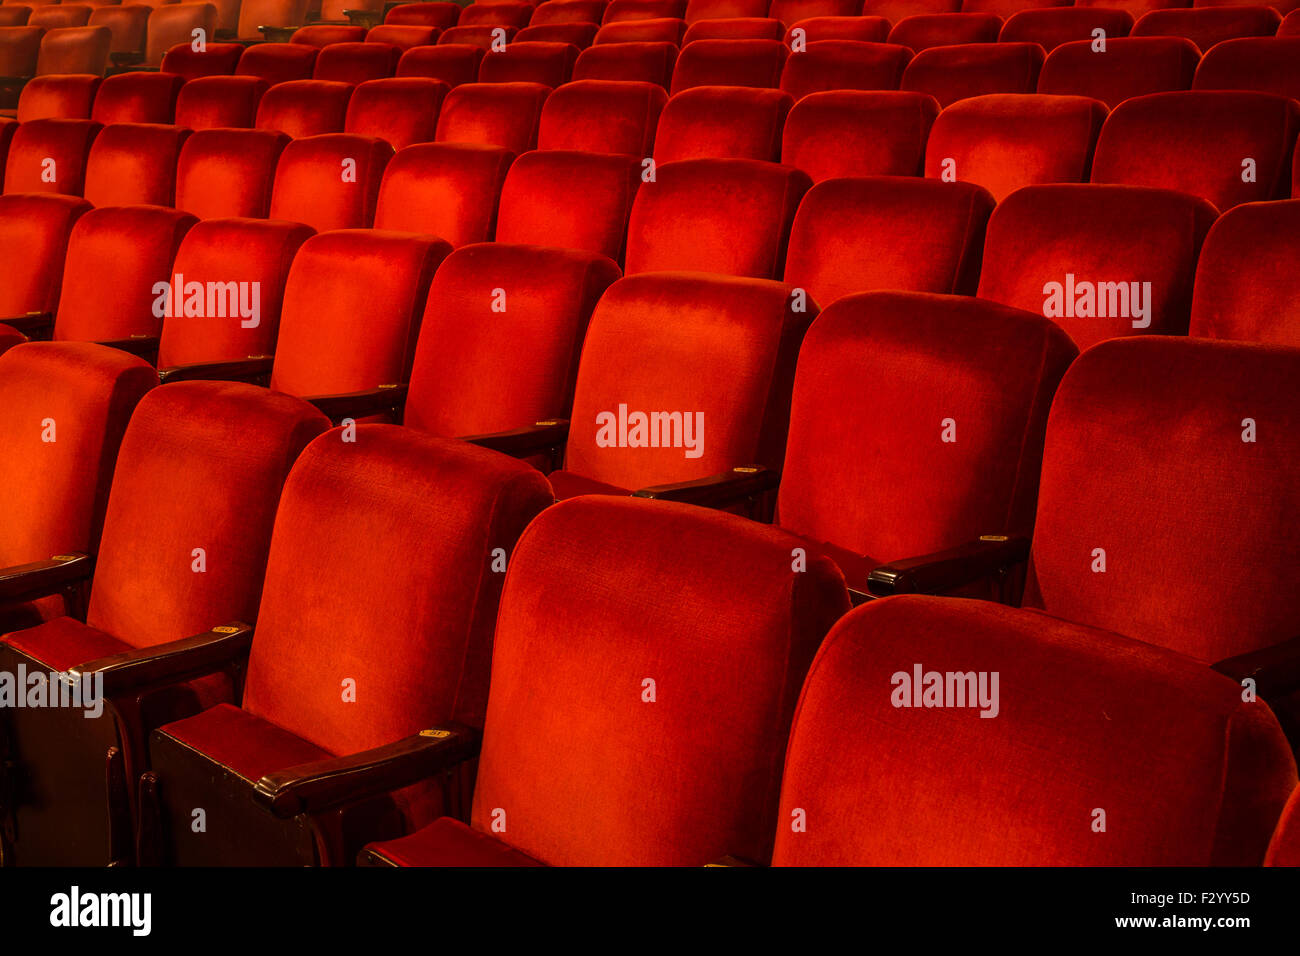 Rows of Red Chairs inside a theatre with copy space Stock Photo